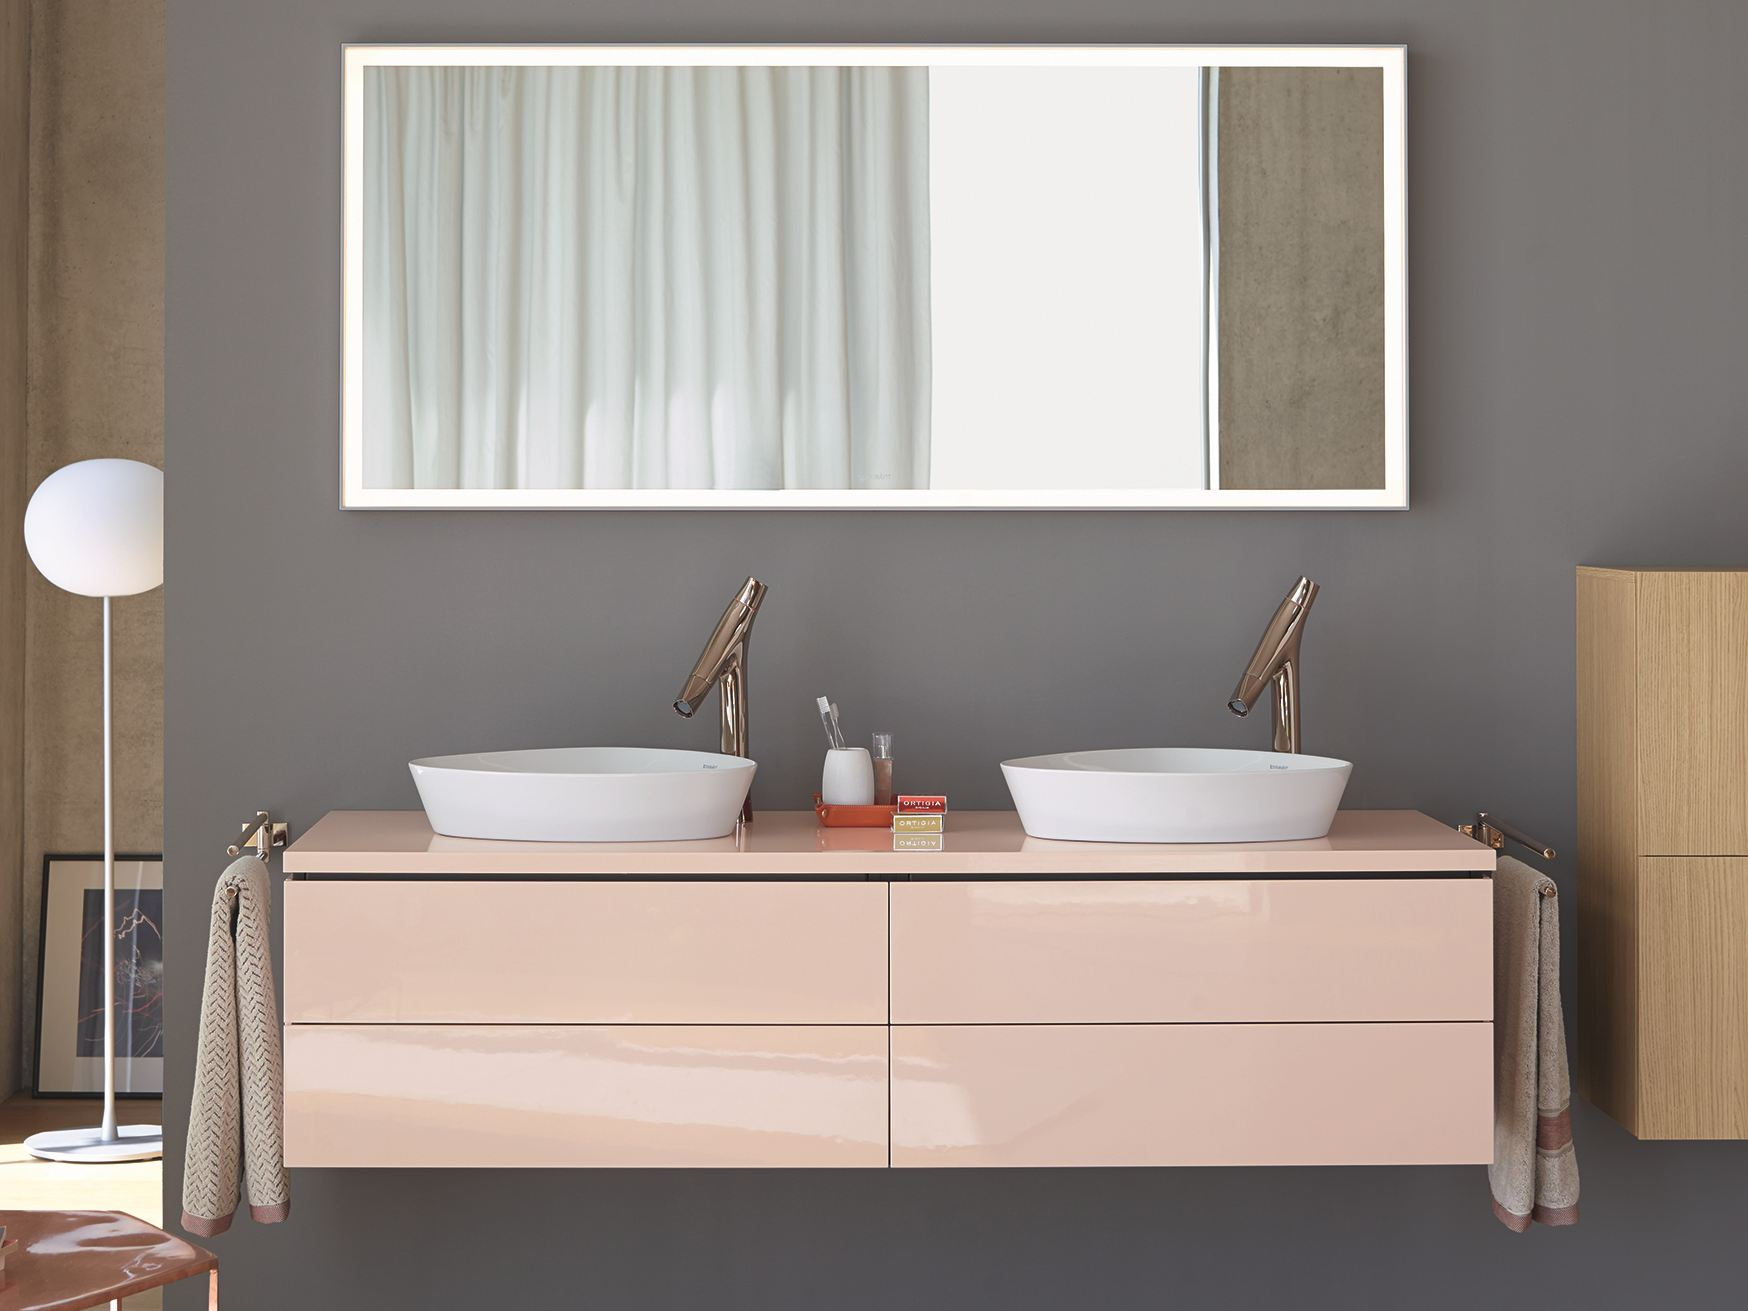 LC 6269 | Double vanity unit By Duravit design Christian Werner